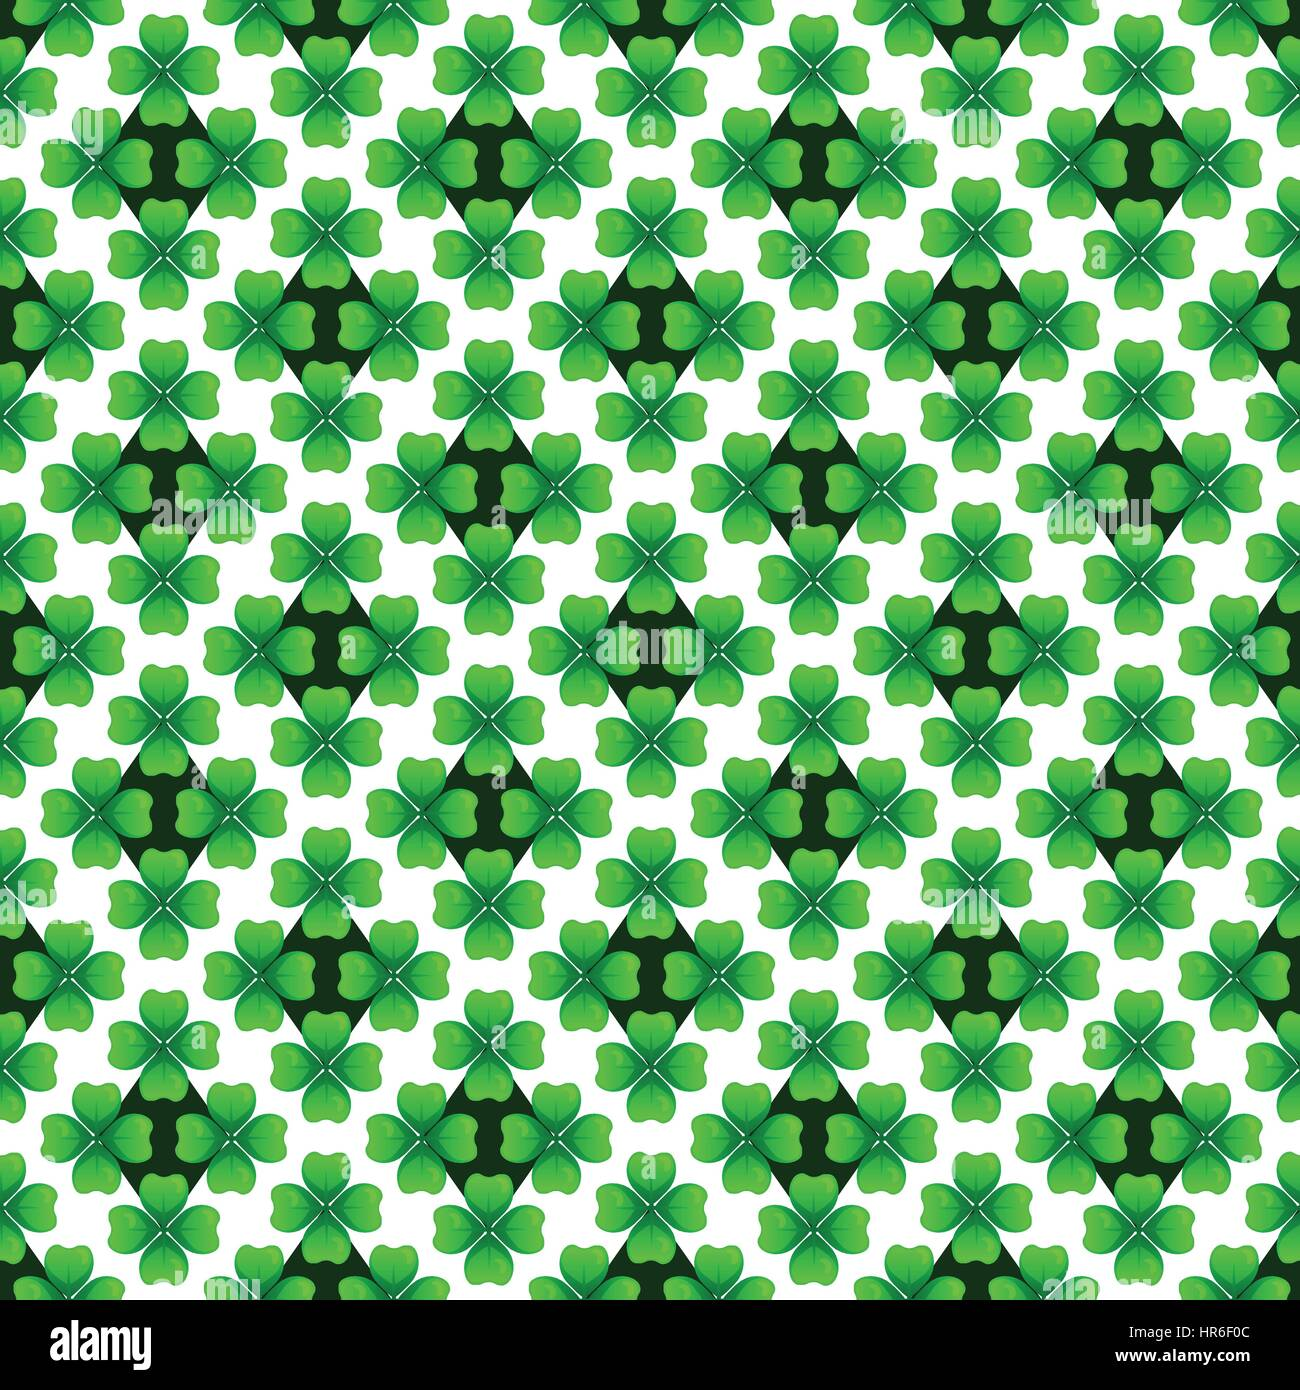 Green clover with four leaves. Sprig against dark rhombus. St Patricks Day seamless pattern. Vector tileable design - Stock Vector